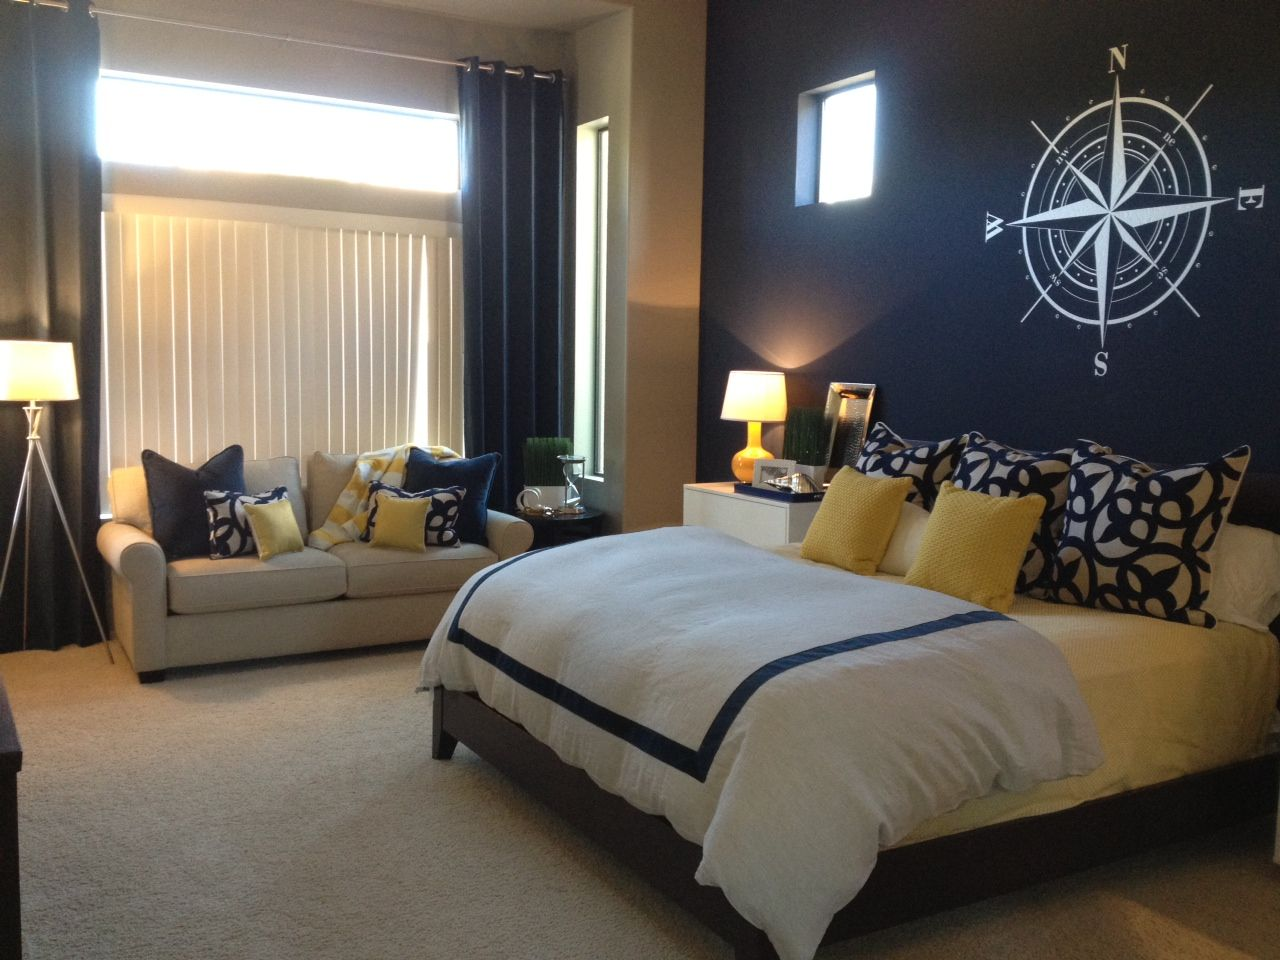 Bedroom Nautical Decor The Magnificent Rooms That Look Luxurious With Equipped Sofas And Plush Beds There Is Also A Carpet